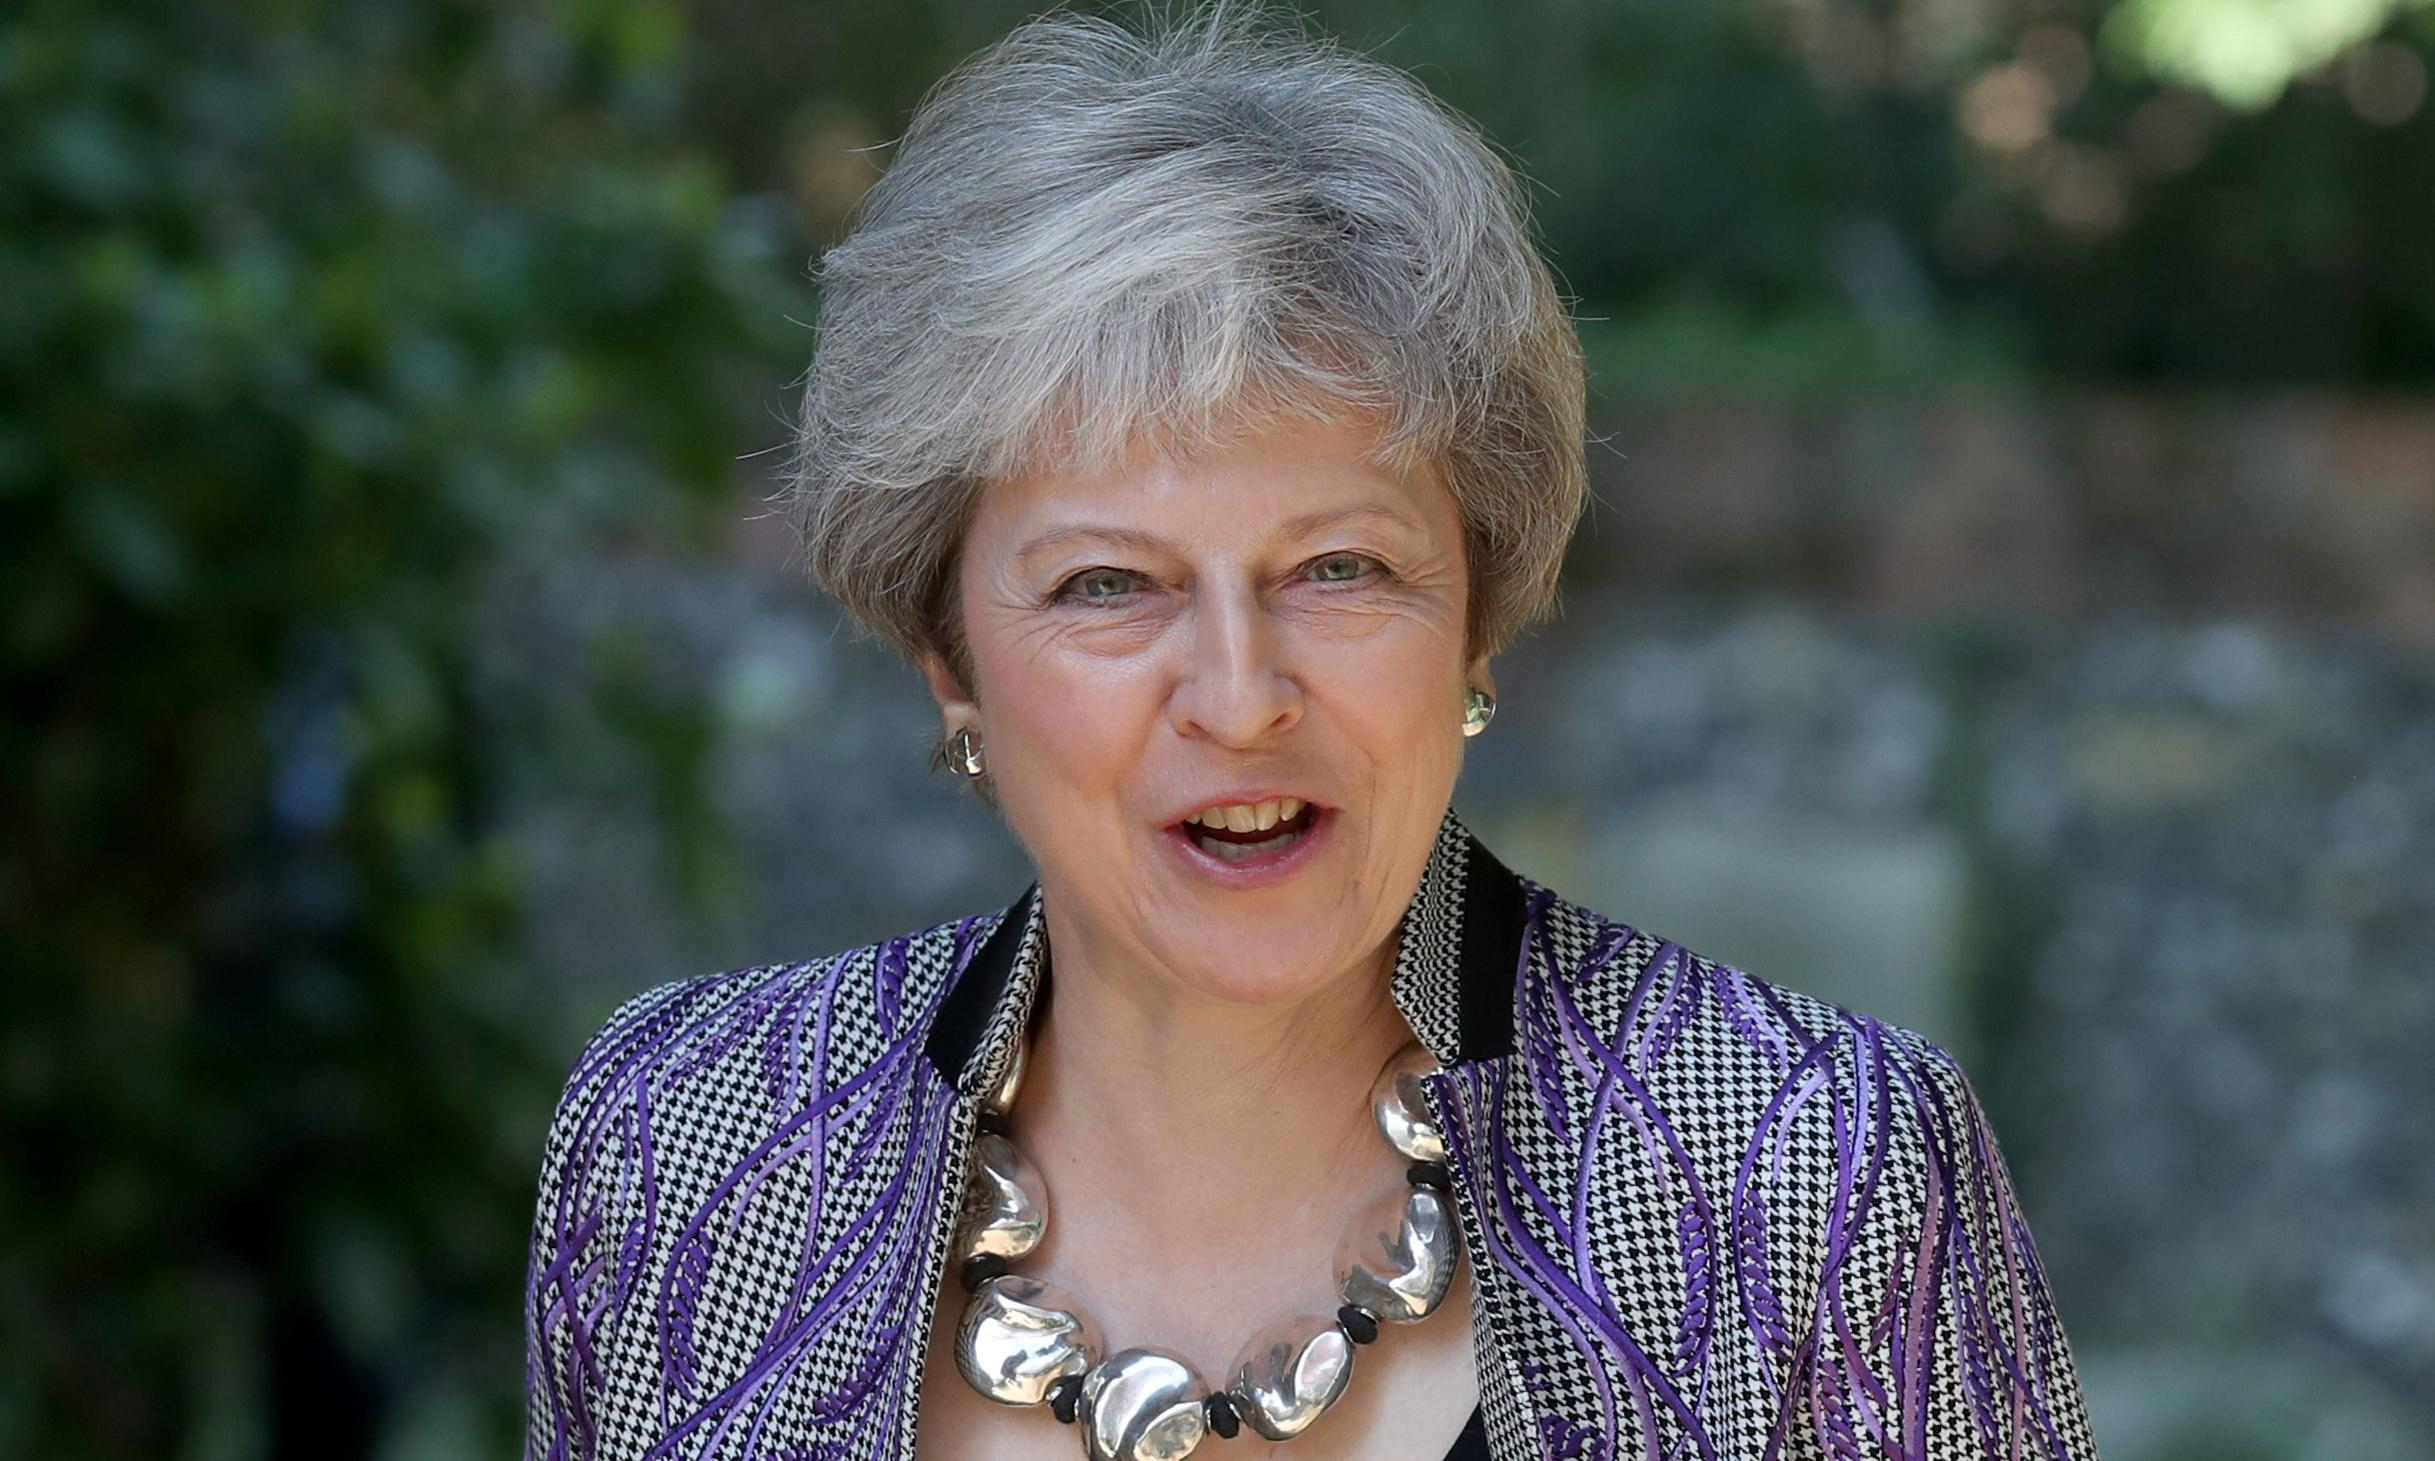 May should go today, says senior 1922 Committee member